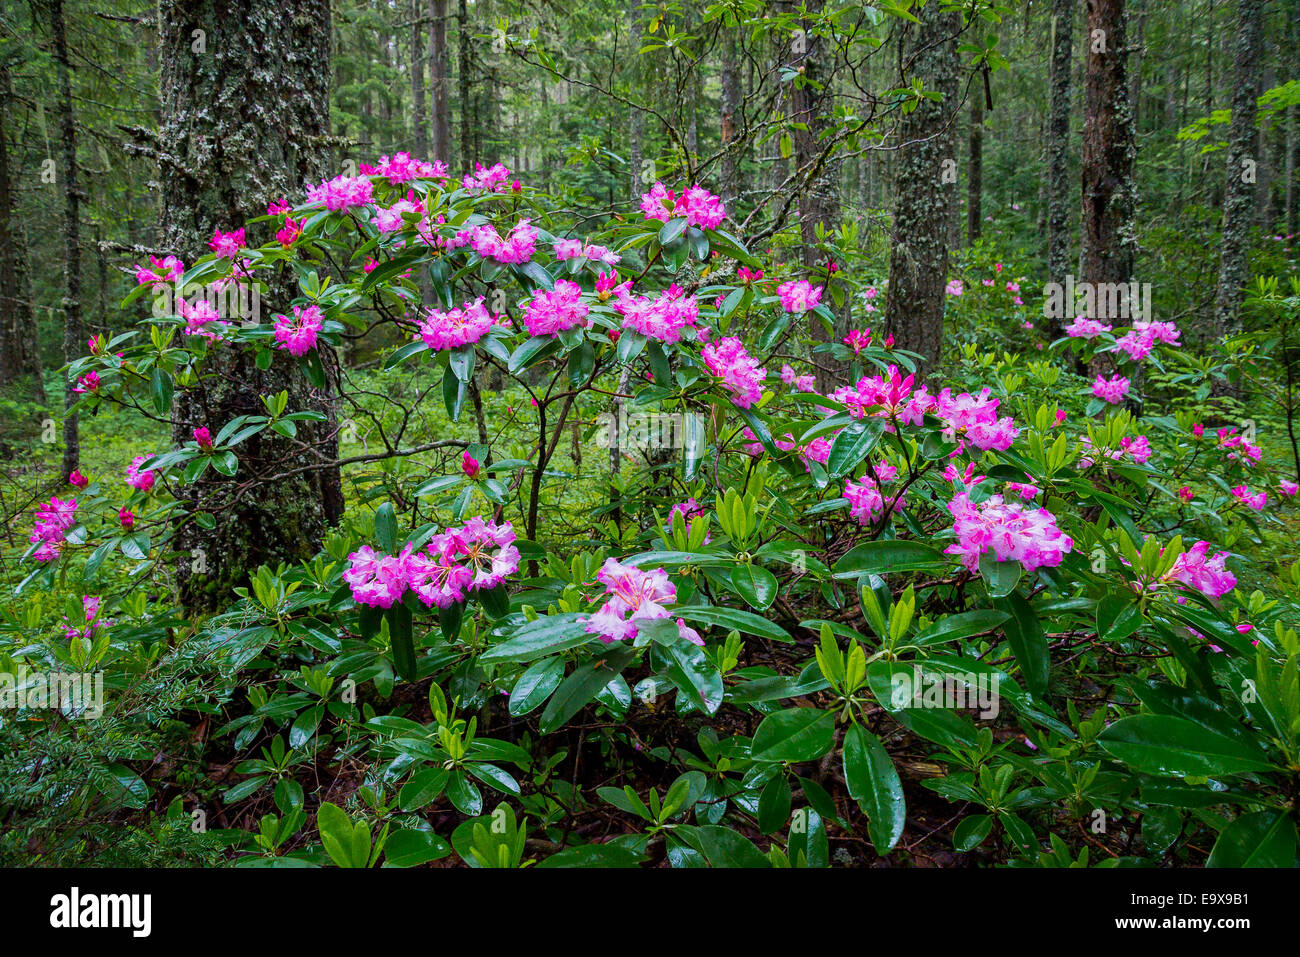 Pacific Rhododendron bushes in flower, Manning Provincial Park, British Columbia, Canada - Stock Image